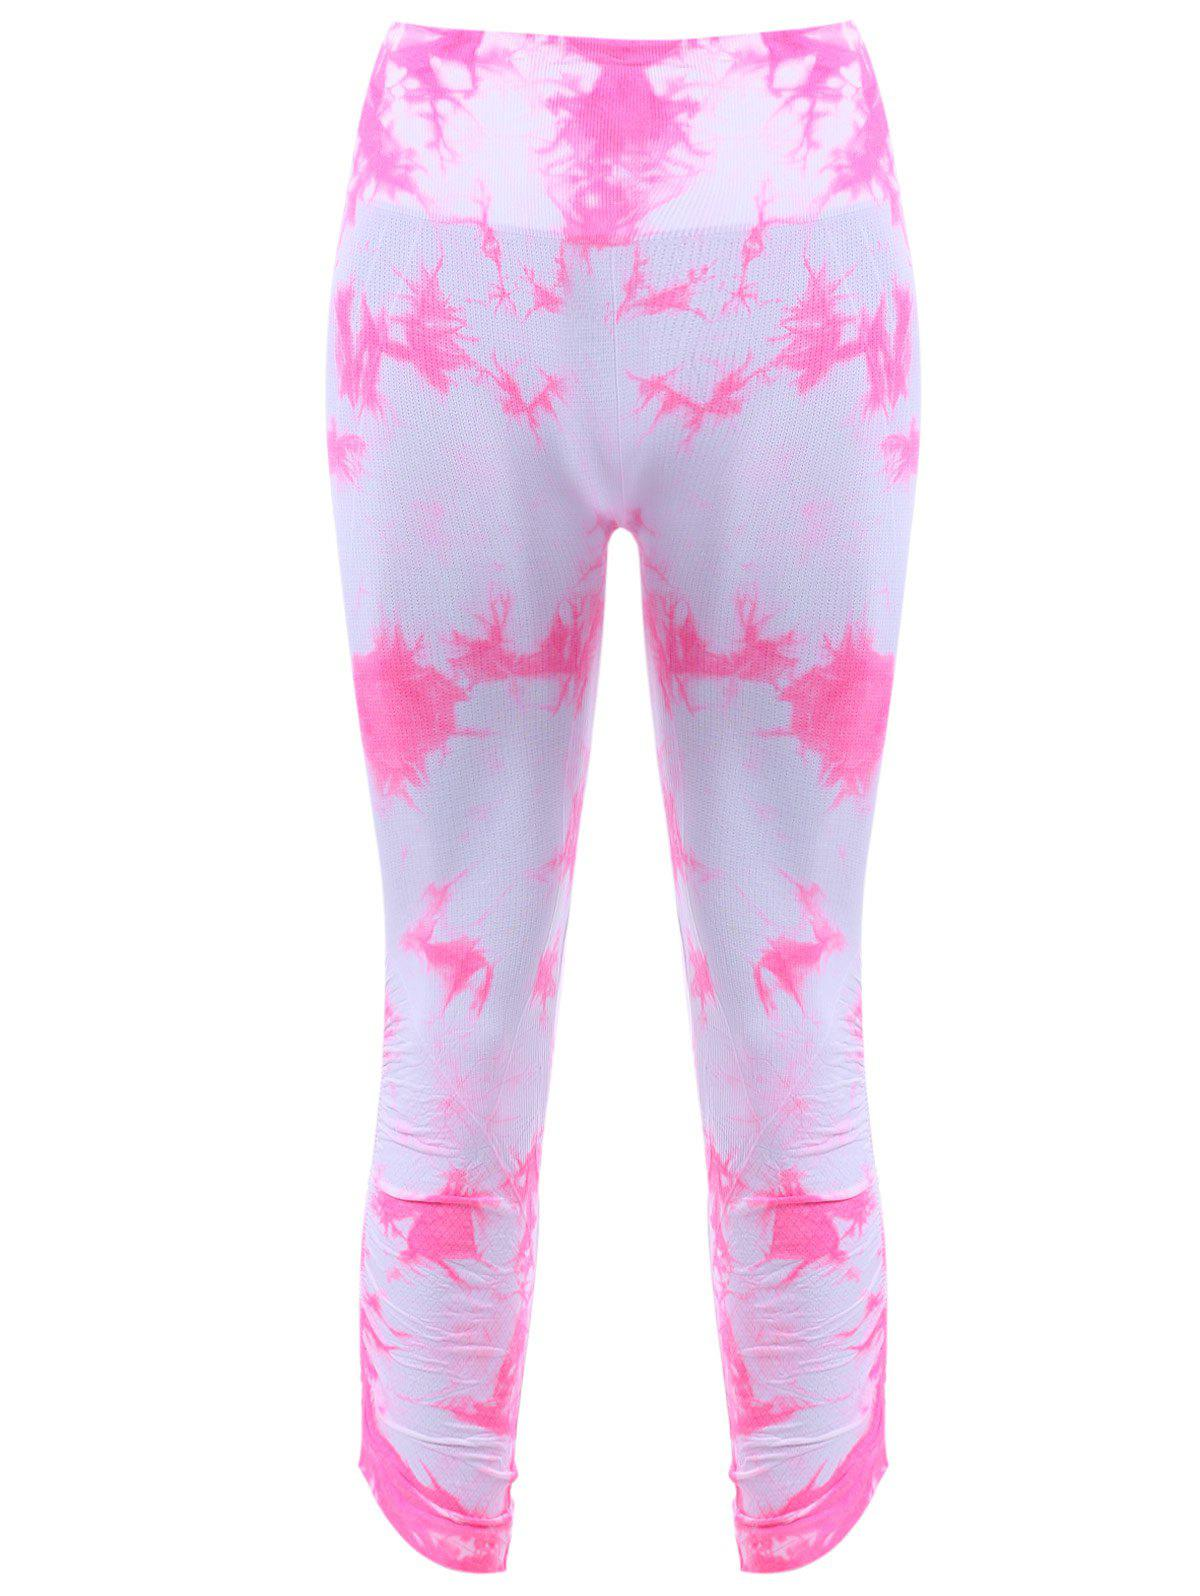 Active Elastic Waist Tie Dyed Cropped Leggings - PINK XL